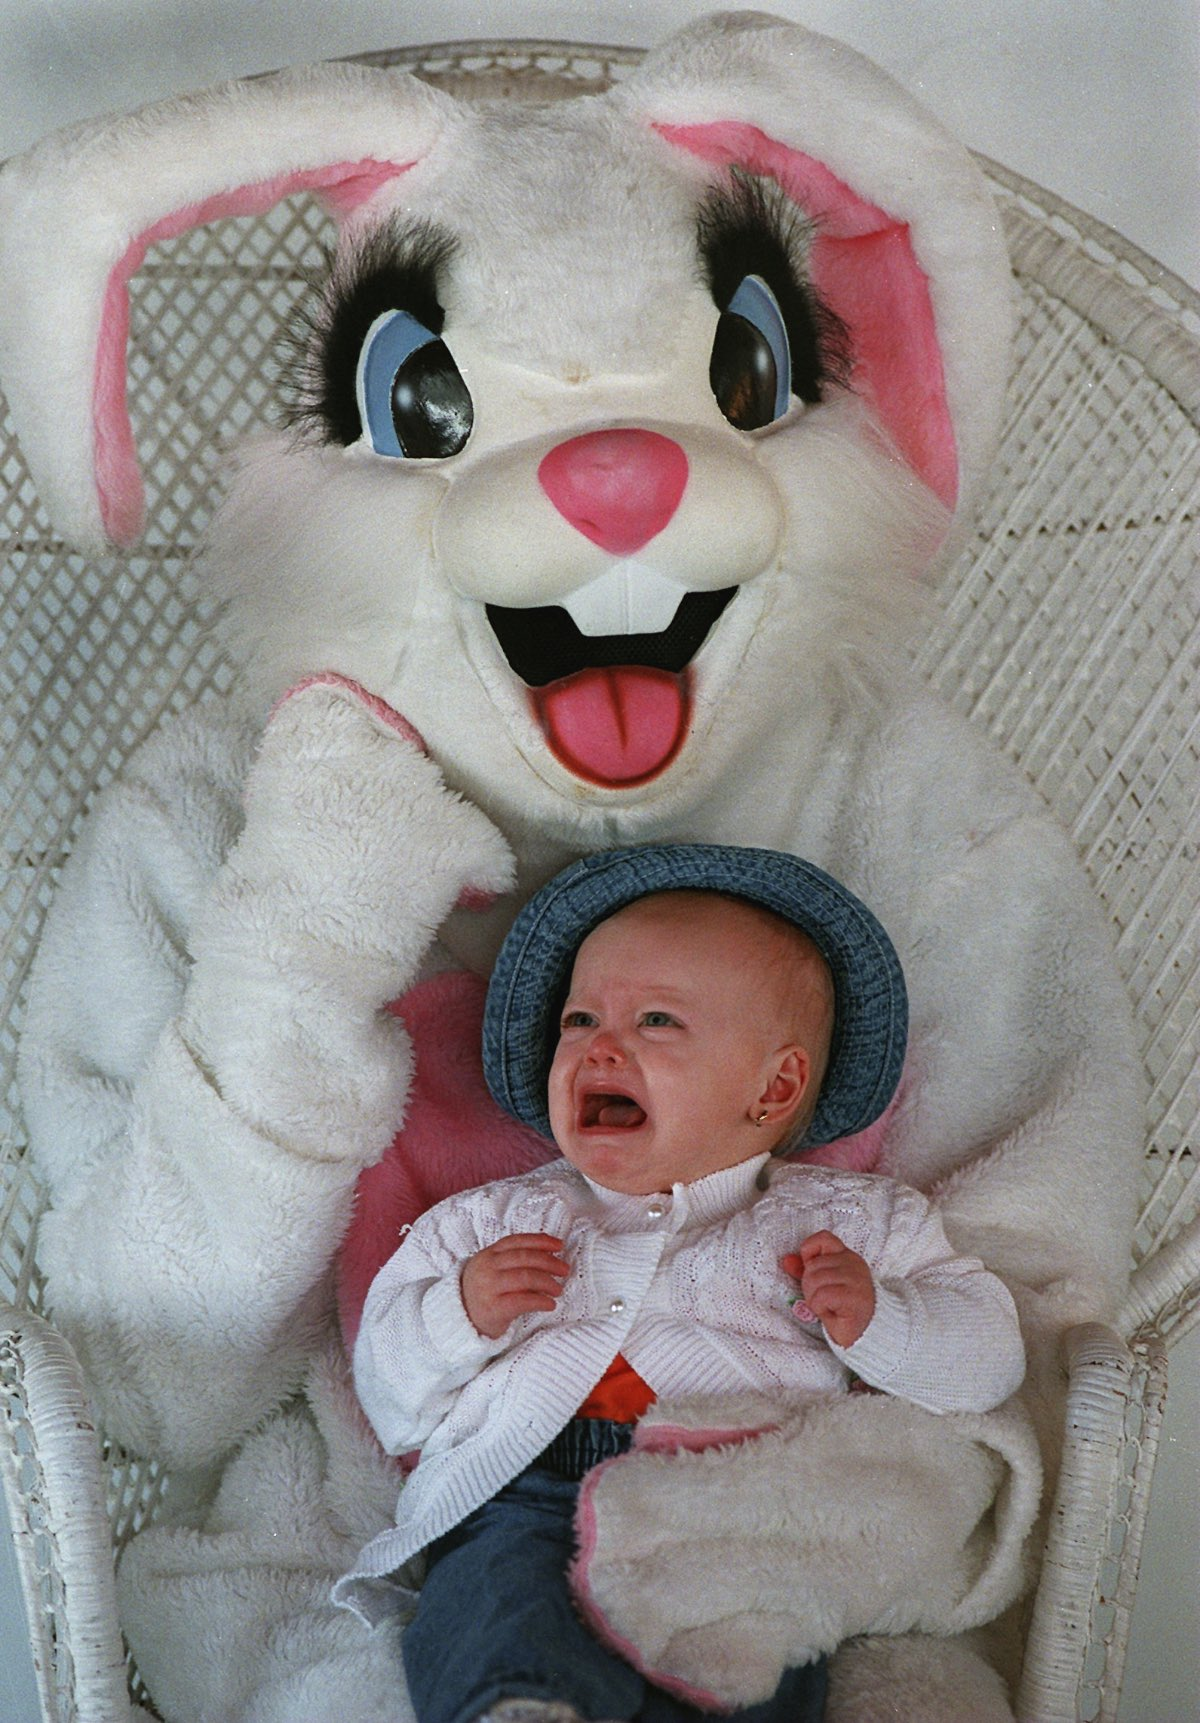 Scary Easter Bunny Photos These easter bunnies are